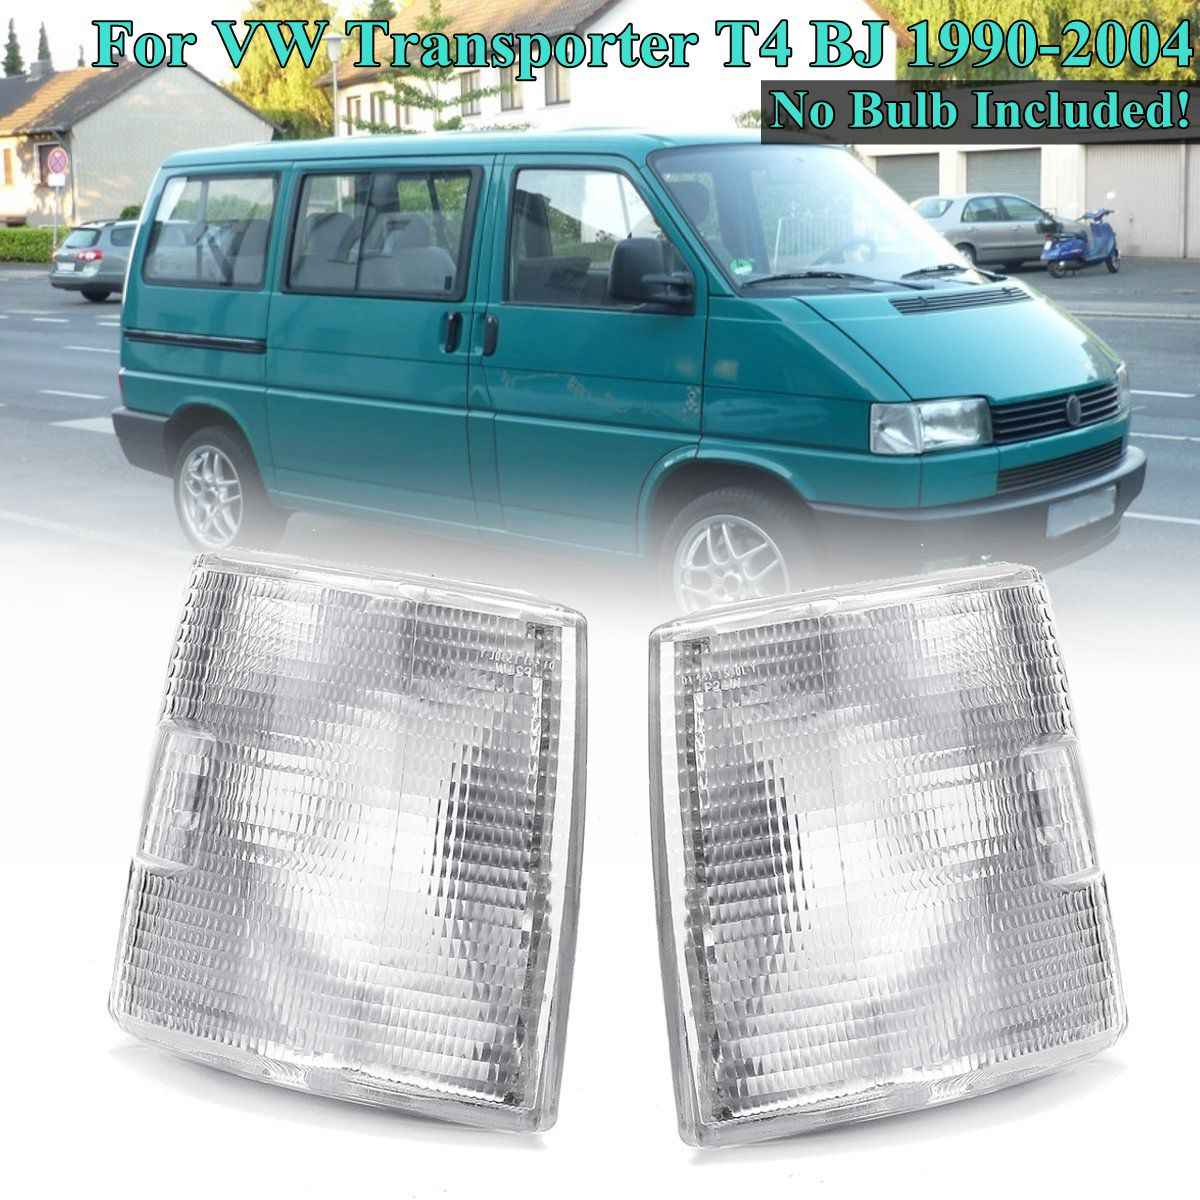 small resolution of 1 pair front corner lights indicator signal lamps for vw transporter t4 1990 1991 1992 1993